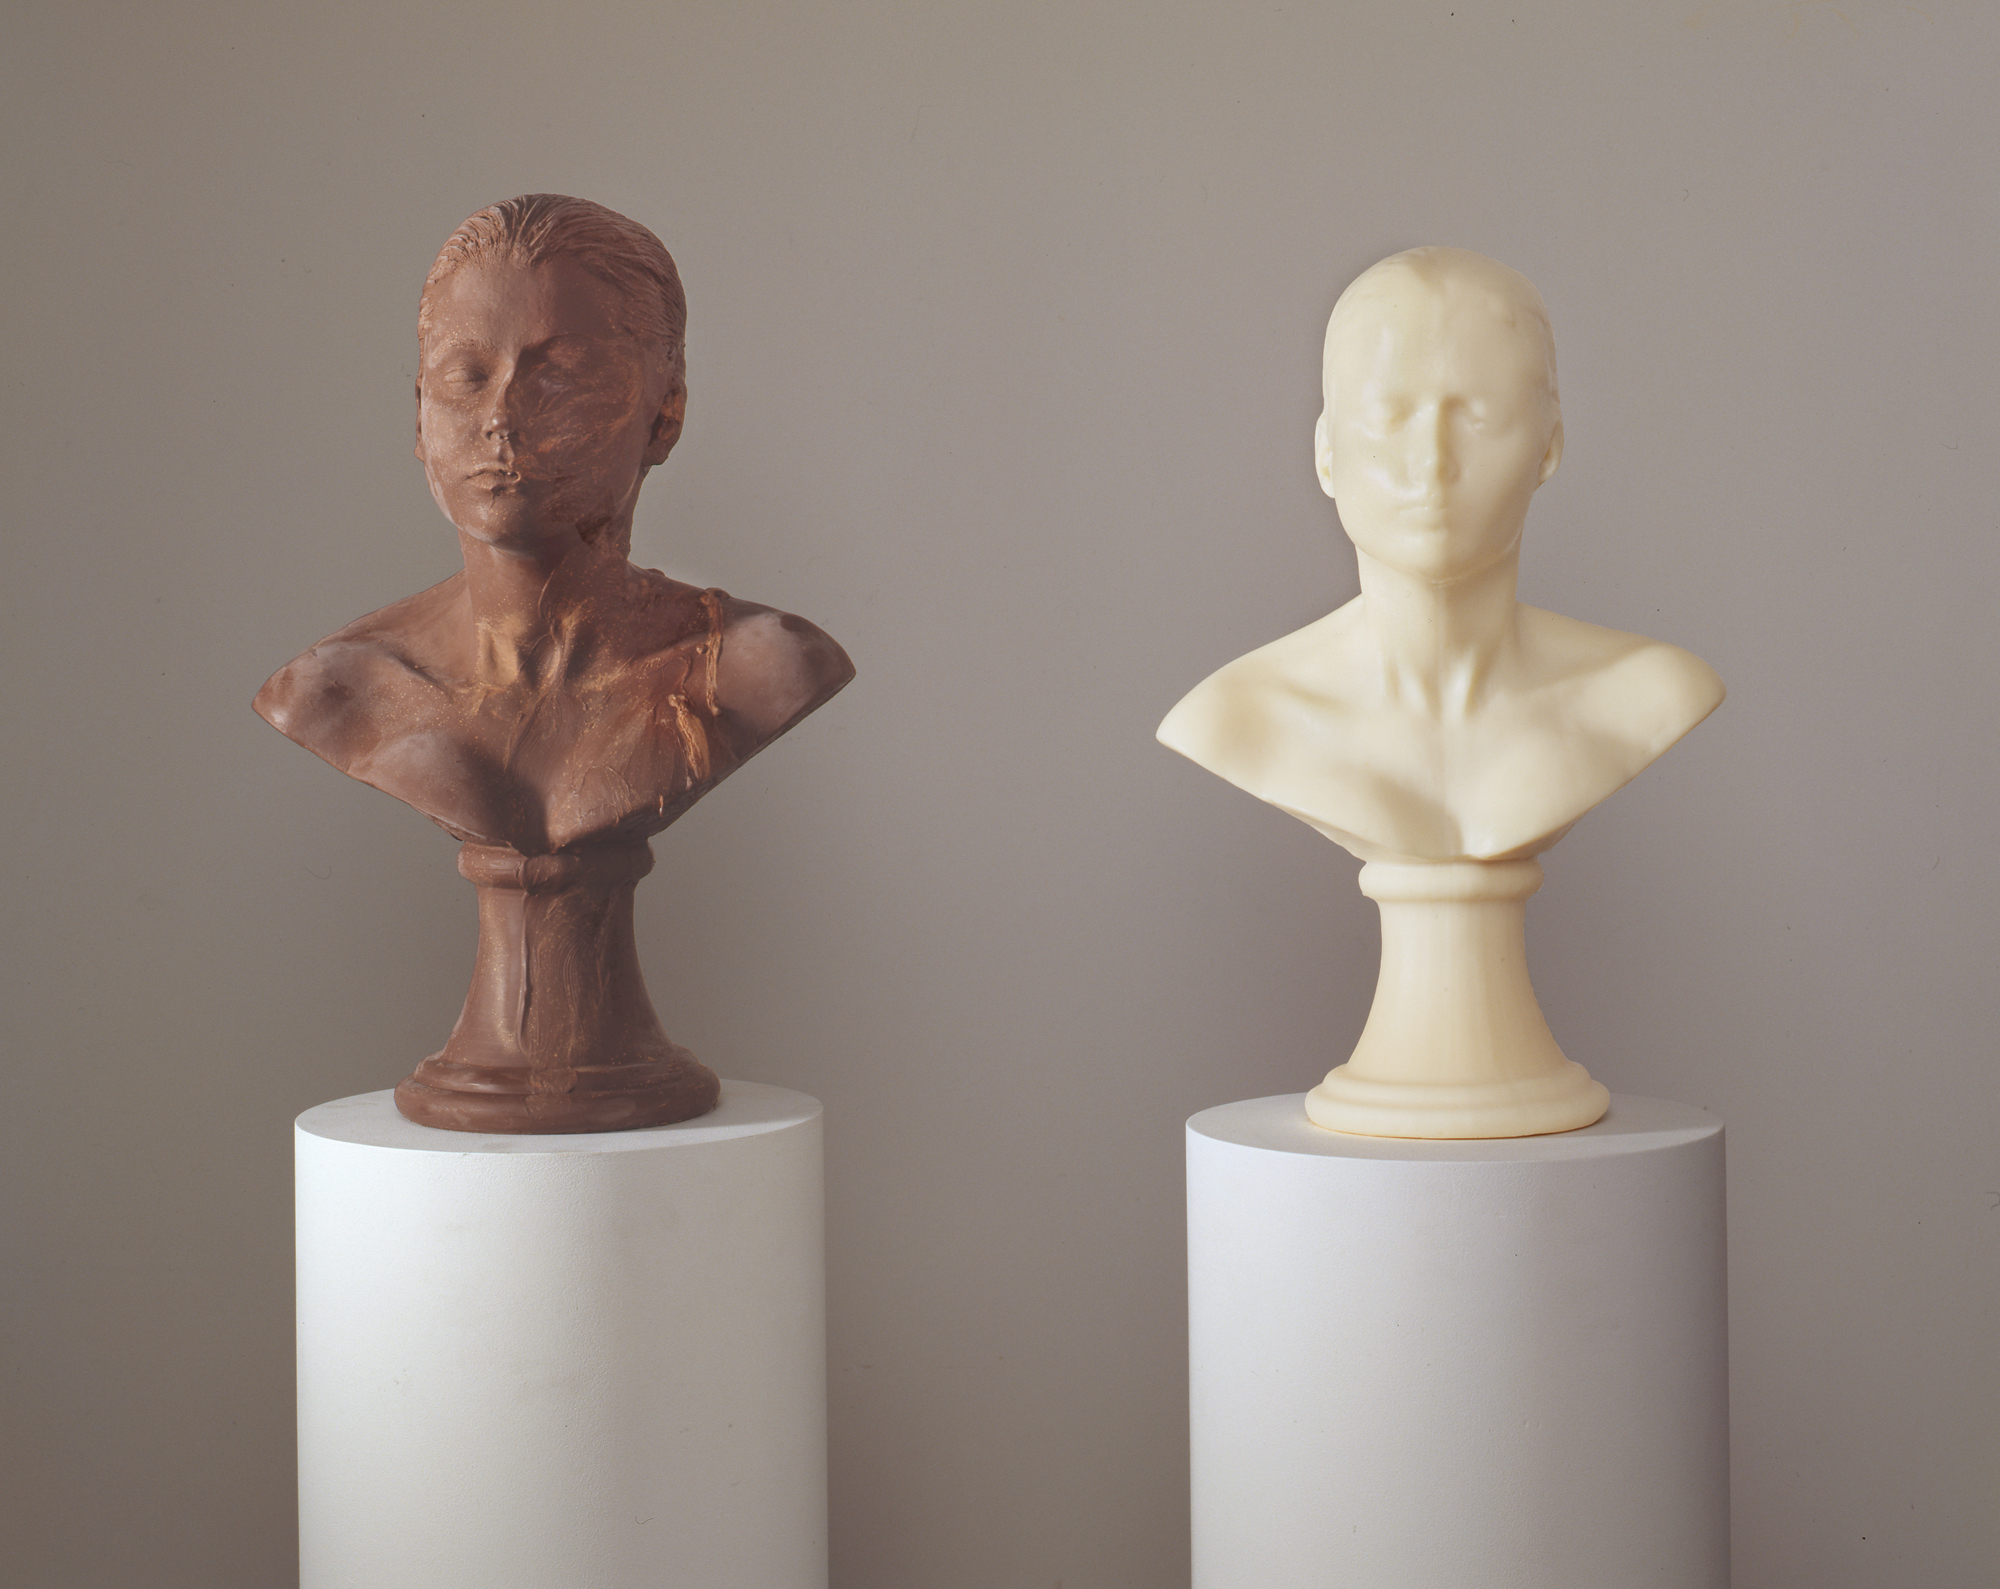 Janine Antoni, Lick and Lather, 1993 One licked chocolate self-portrait bust and one washed soap self-portrait bust on pedestals © Janine Antoni; Courtesy of the artist and Luhring Augustine, New York